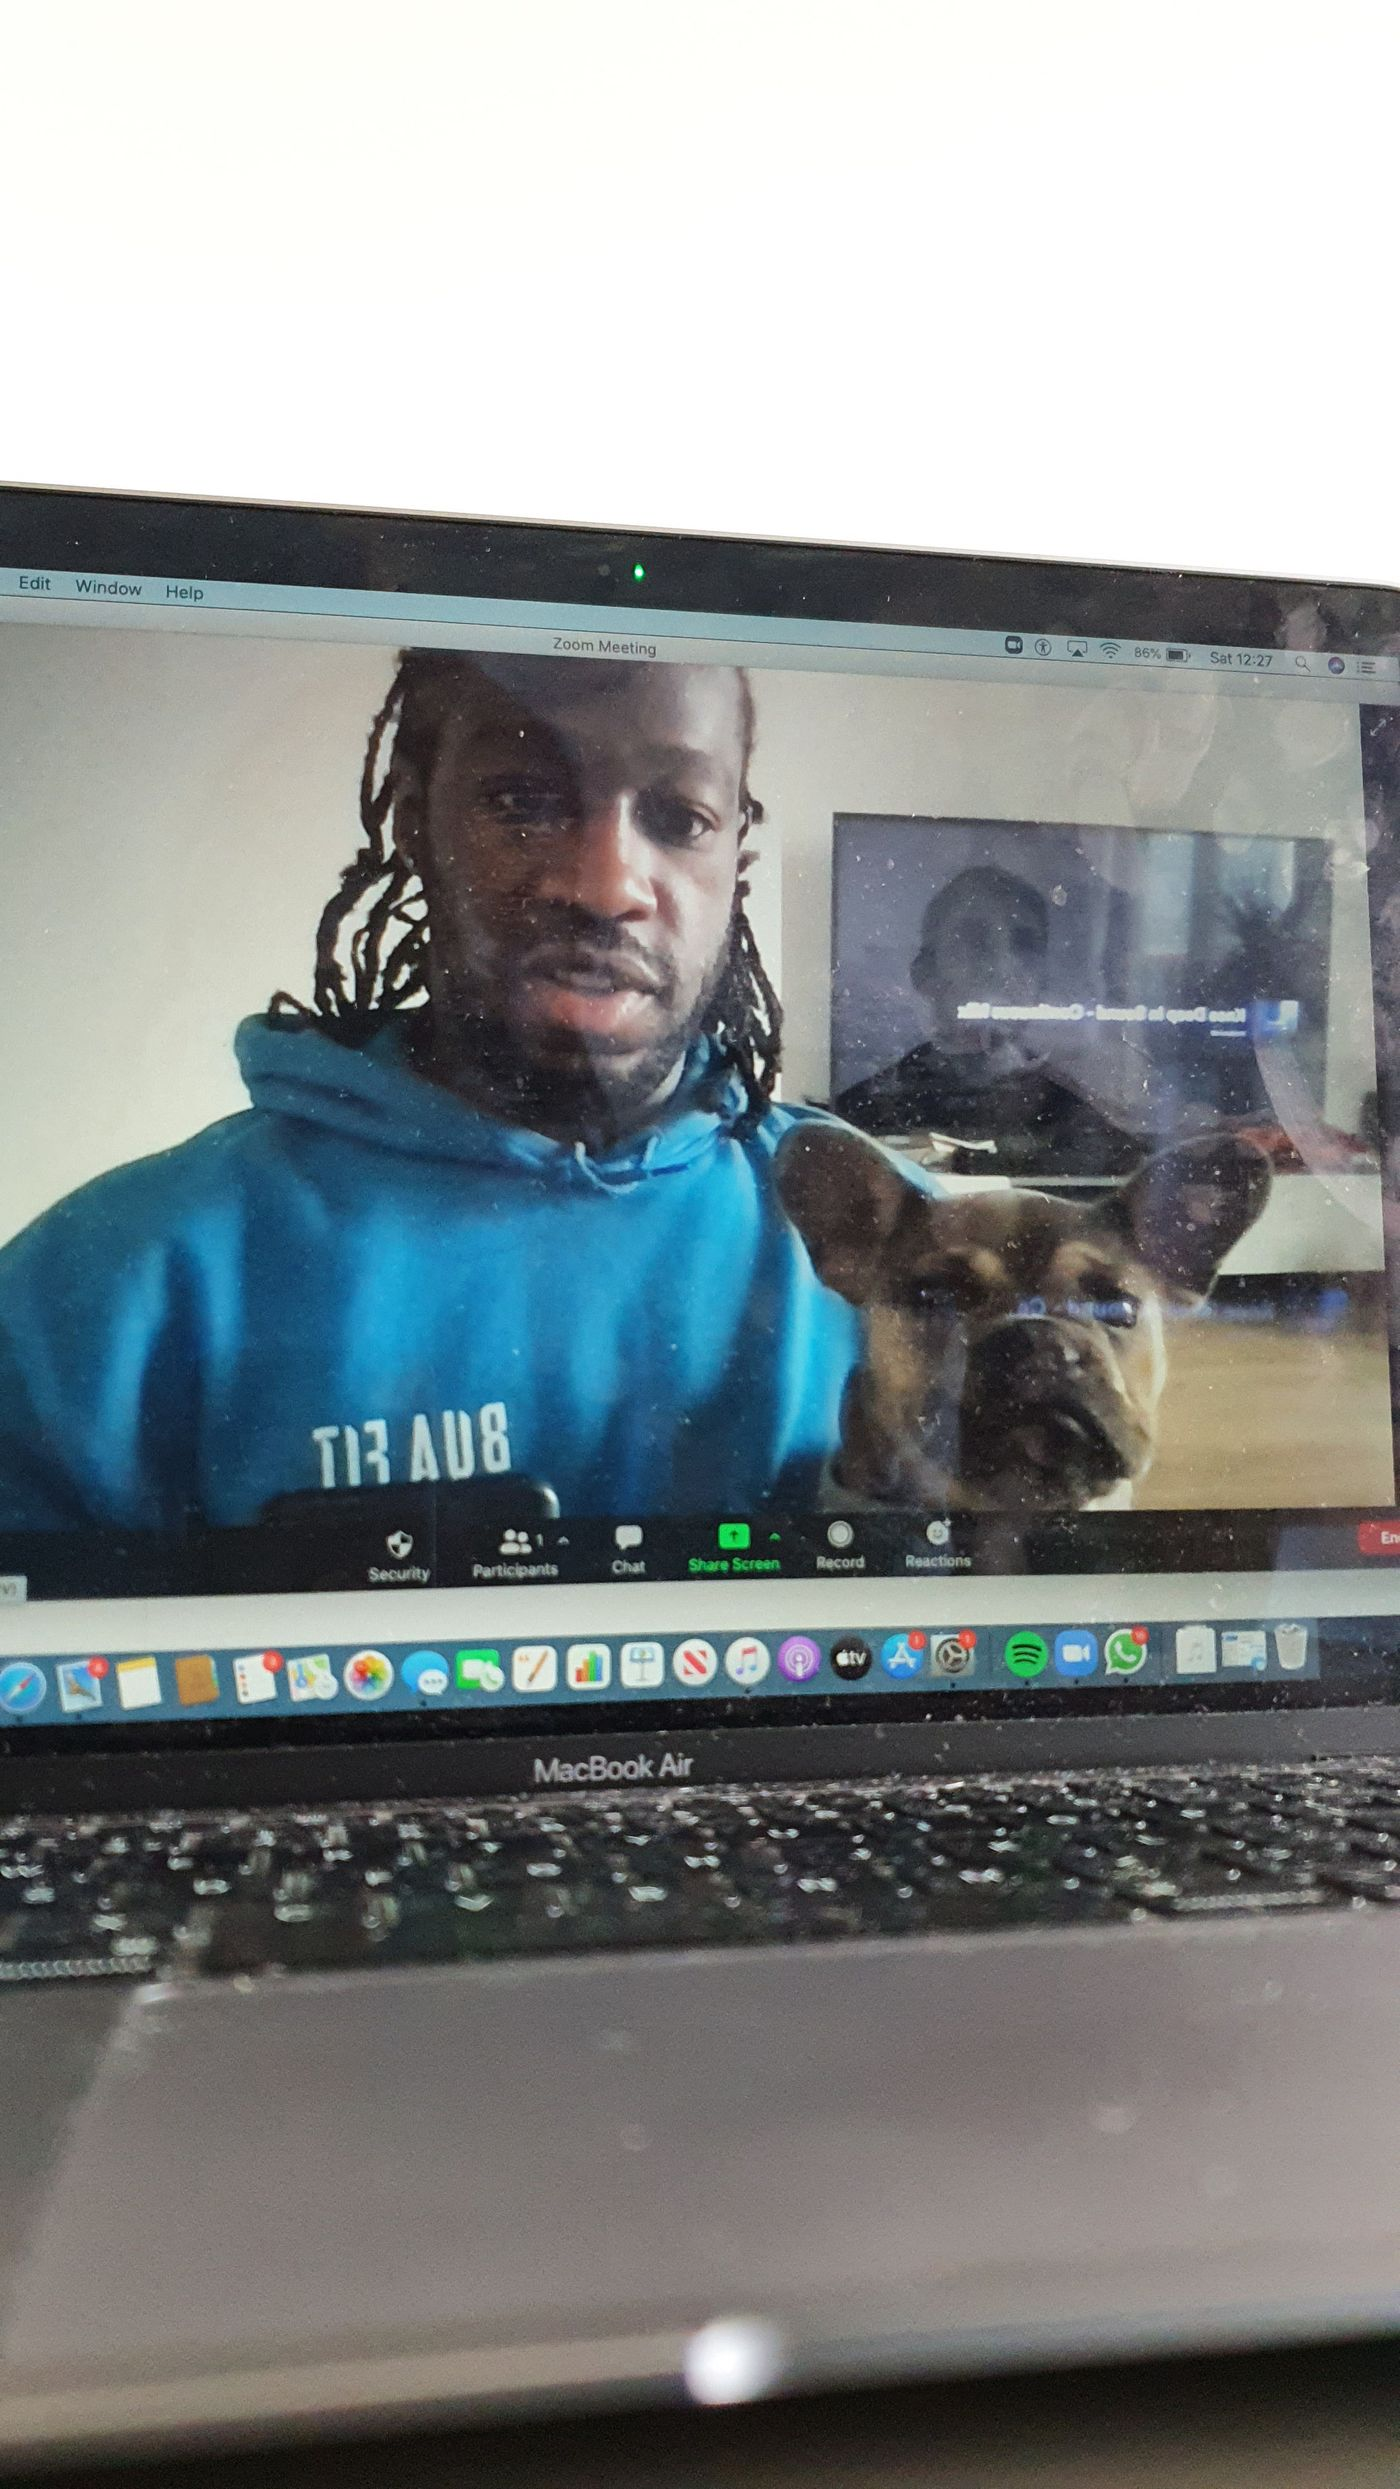 Me and Trunks enjoyed taking our first online class together yesterday morning well done to everyone that took part!💪🏿